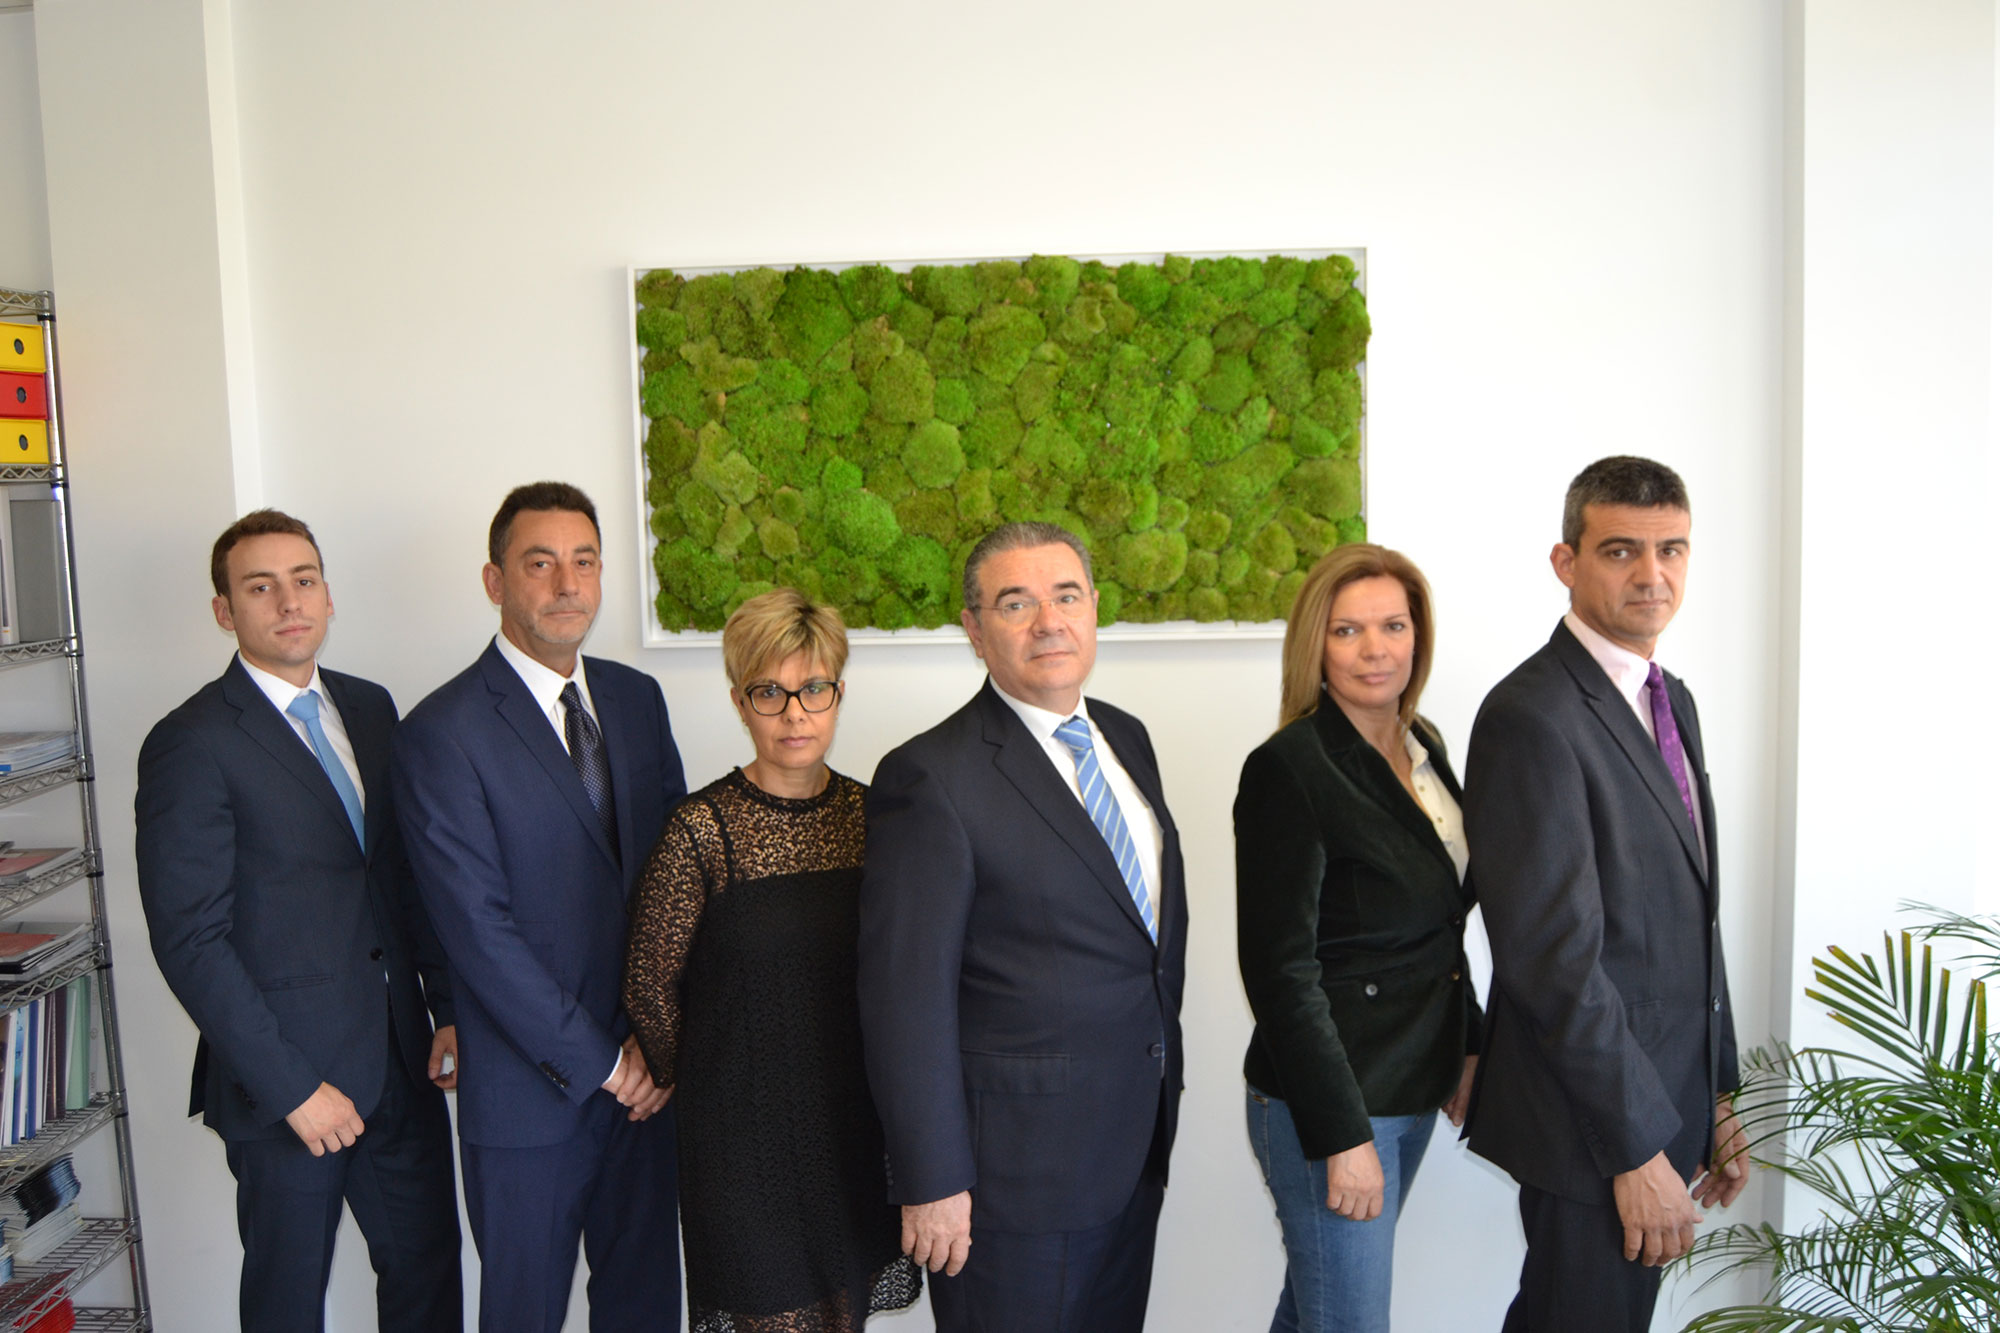 Equipo NTNS Marketplacement